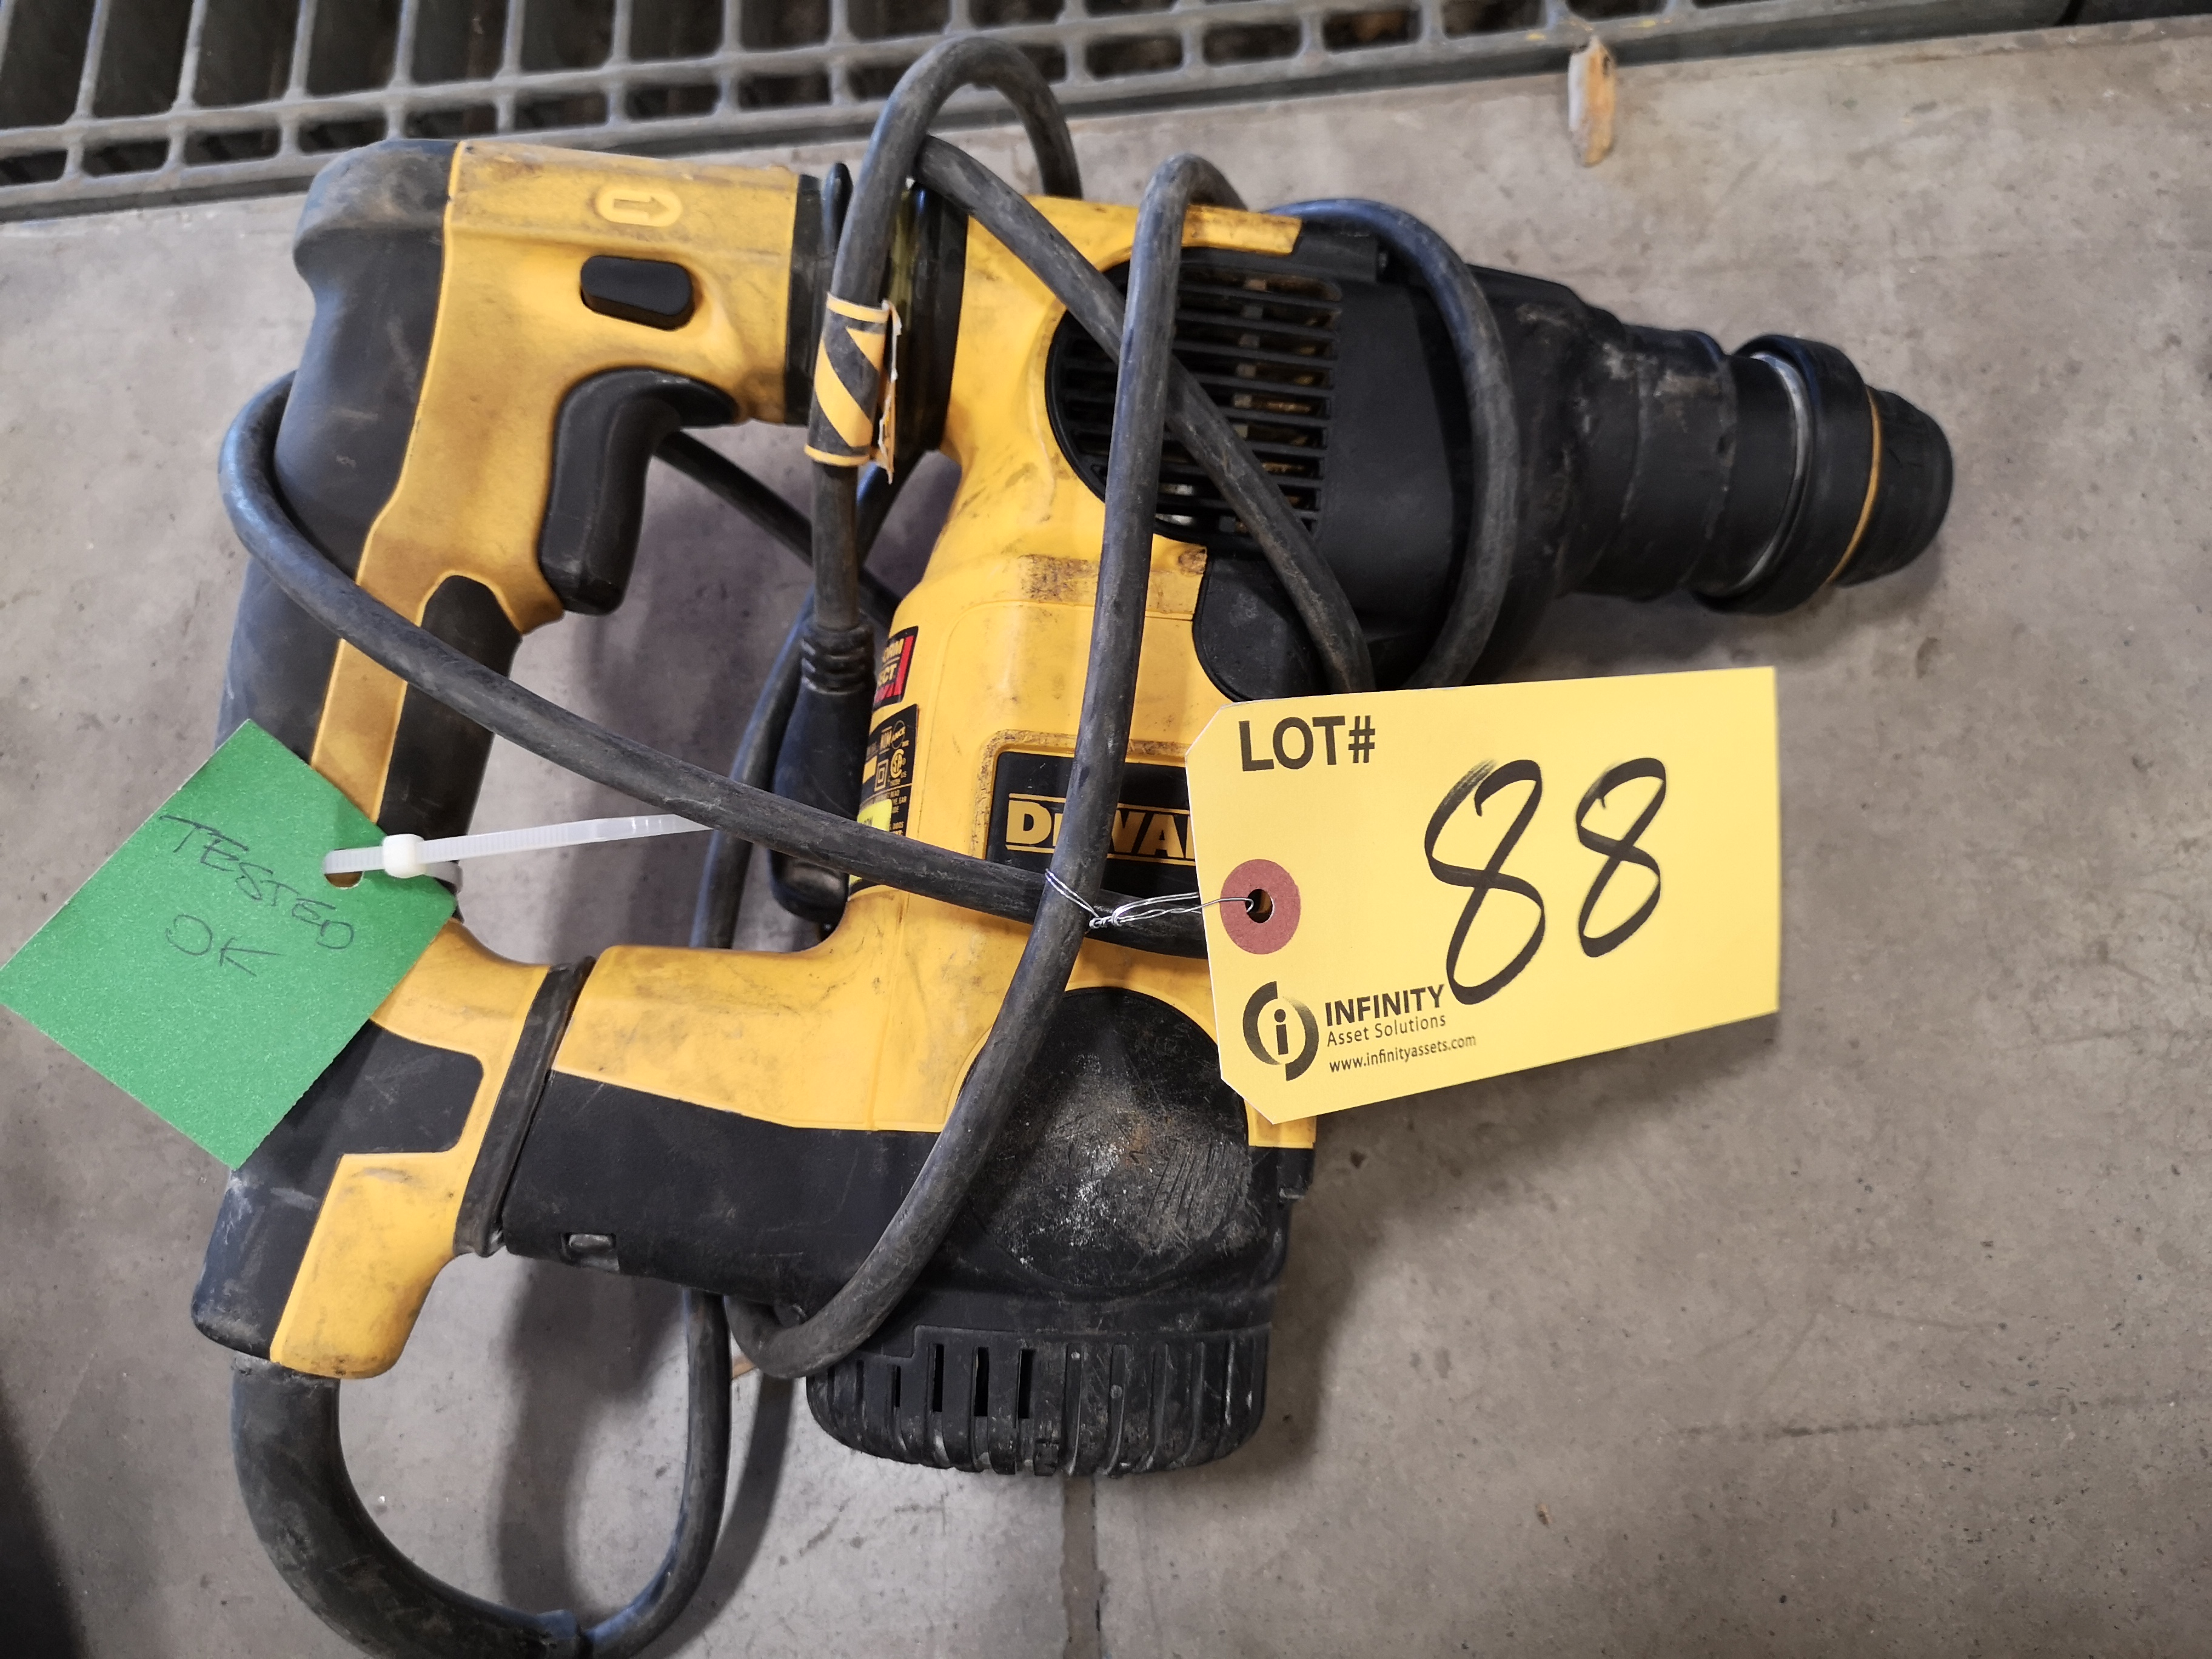 DEWALT D25323 L-SHAPE THREE MODE SDS ROTARY HAMMER DRILL (LOCATED AT 1135 STELLAR DRIVE,